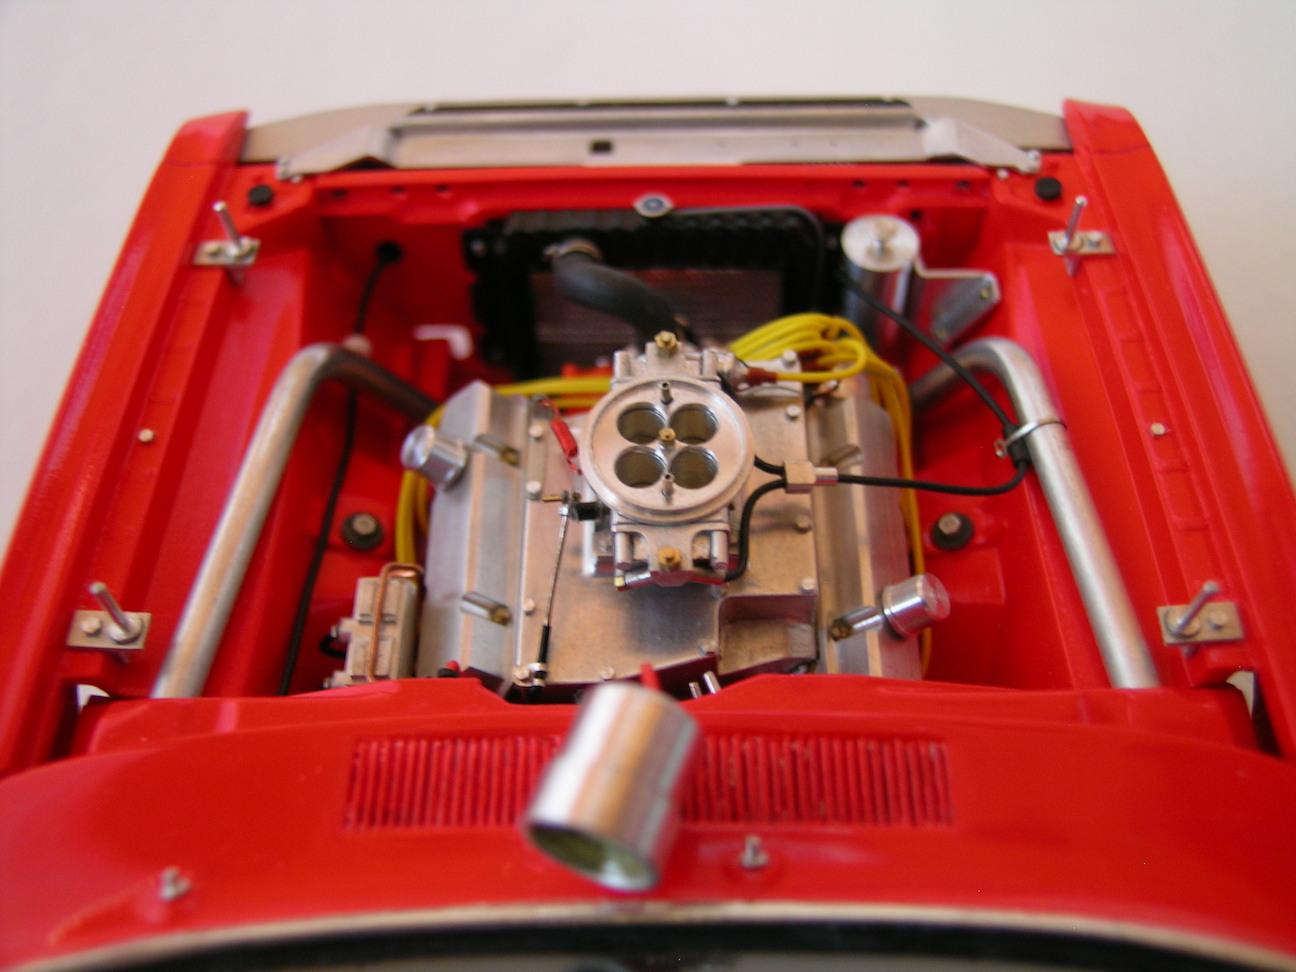 21_Final_Engine_Bay_1.JPG.44b2030ac228f17b308797ae733e5e99.JPG